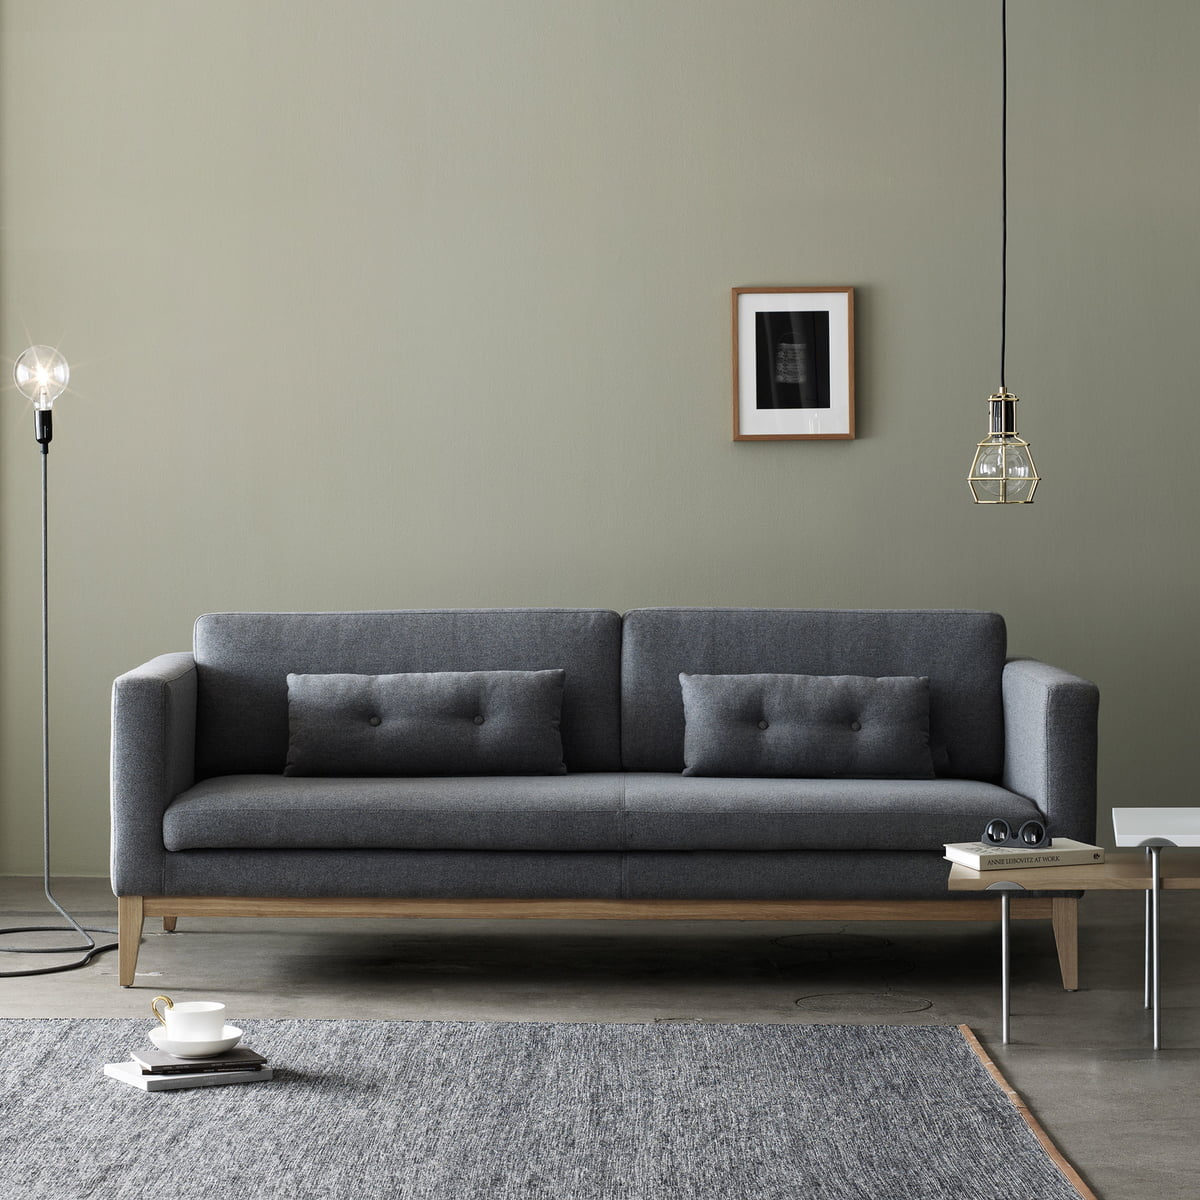 day sofadesign house stockholm now online